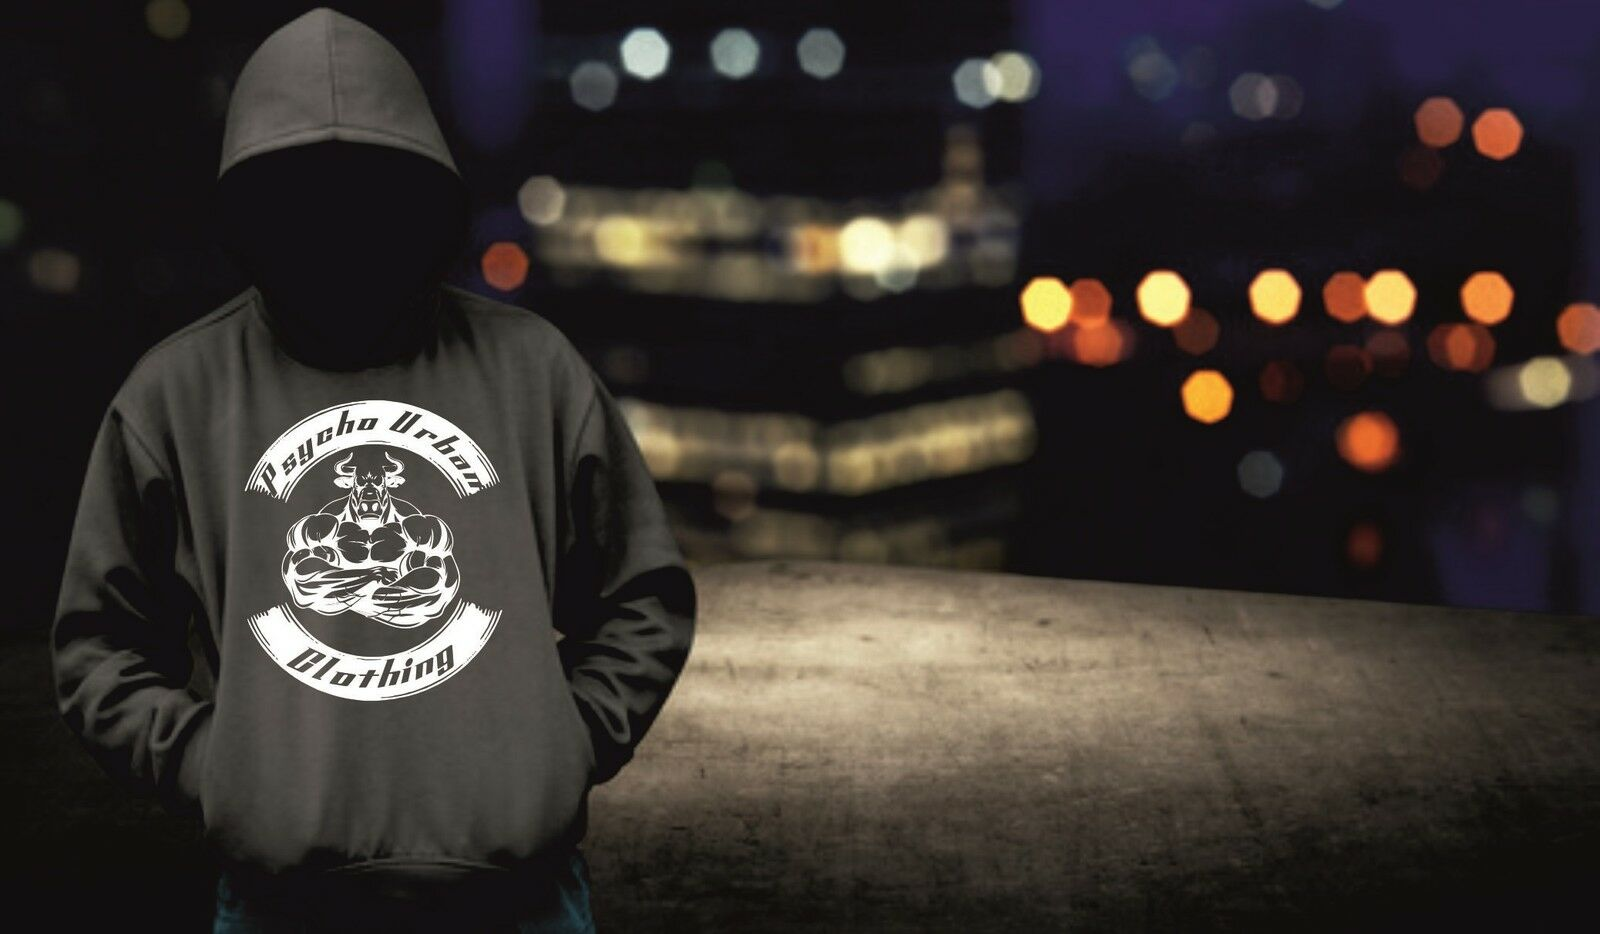 Psycho-Urban-Clothing